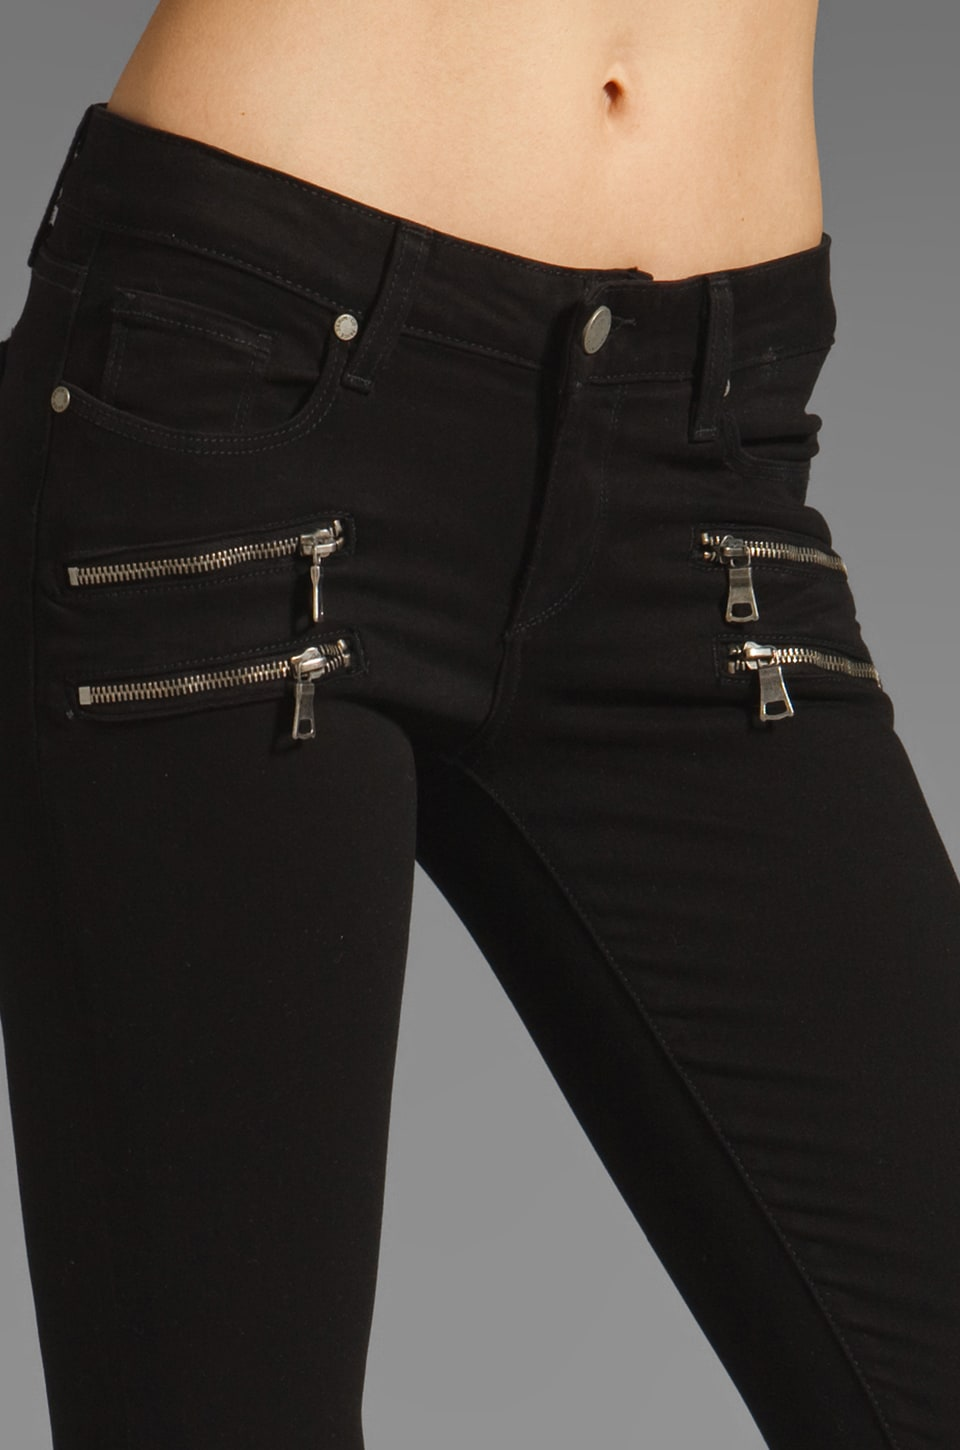 Paige Denim Edgemont Skinny in Black